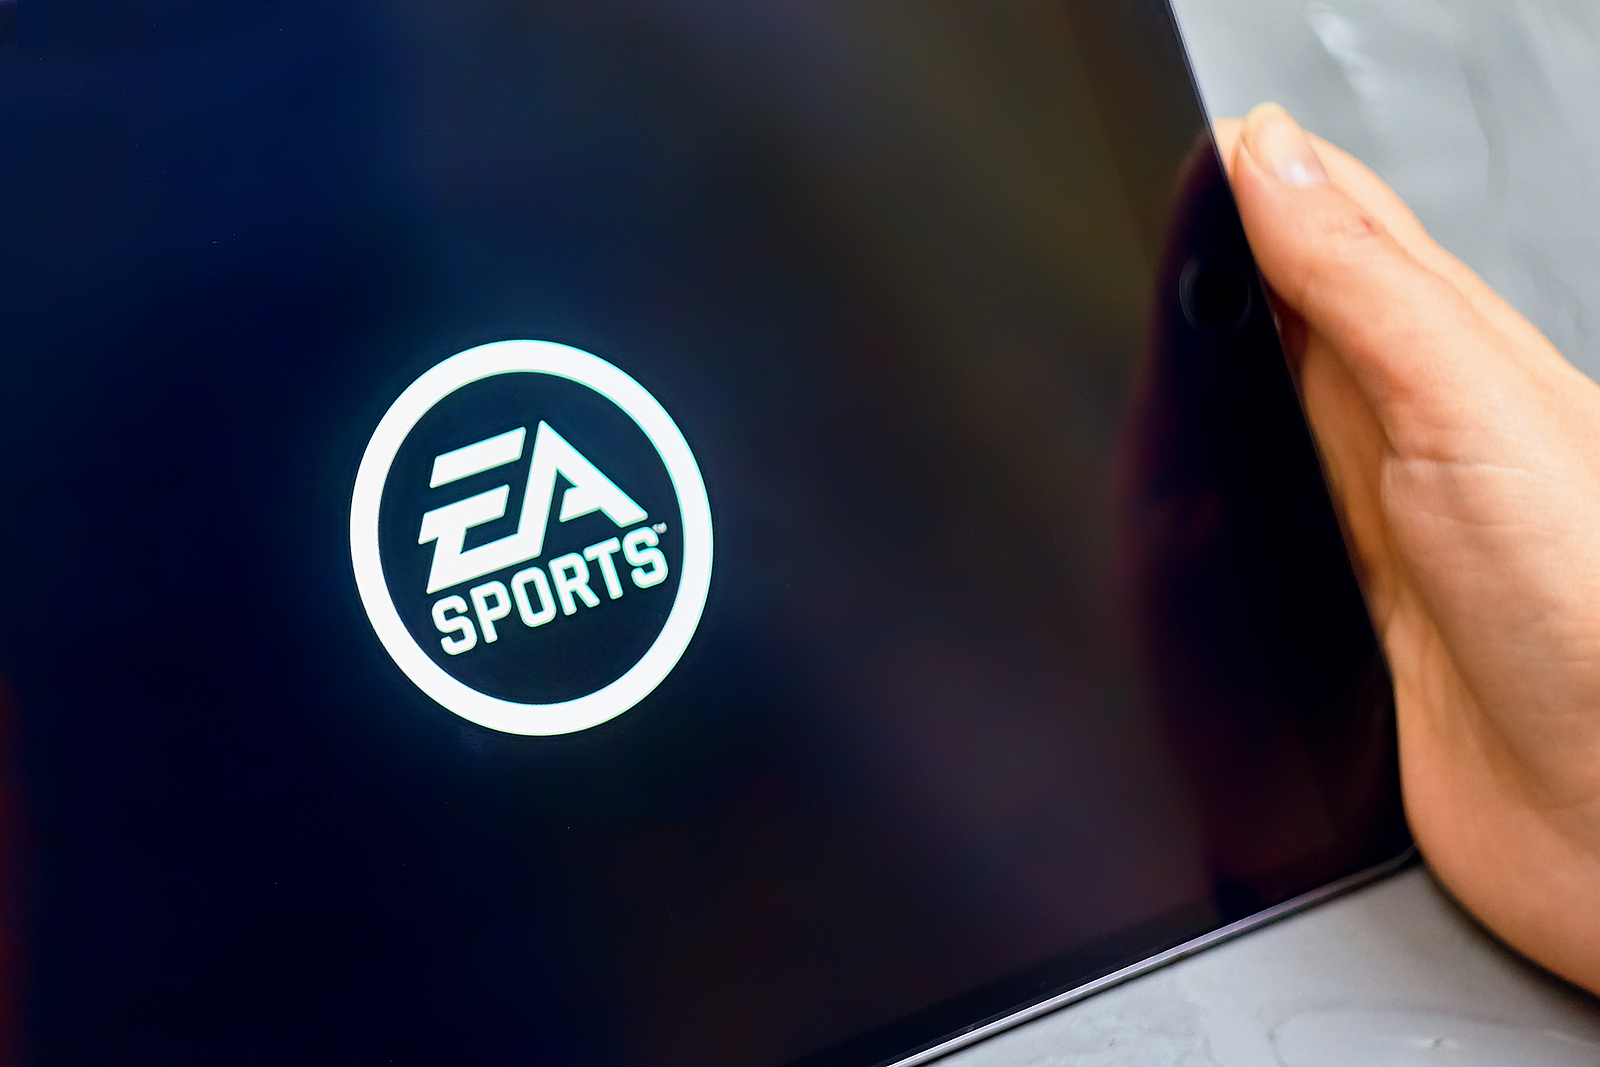 Electronic Arts EA stock news and analysis